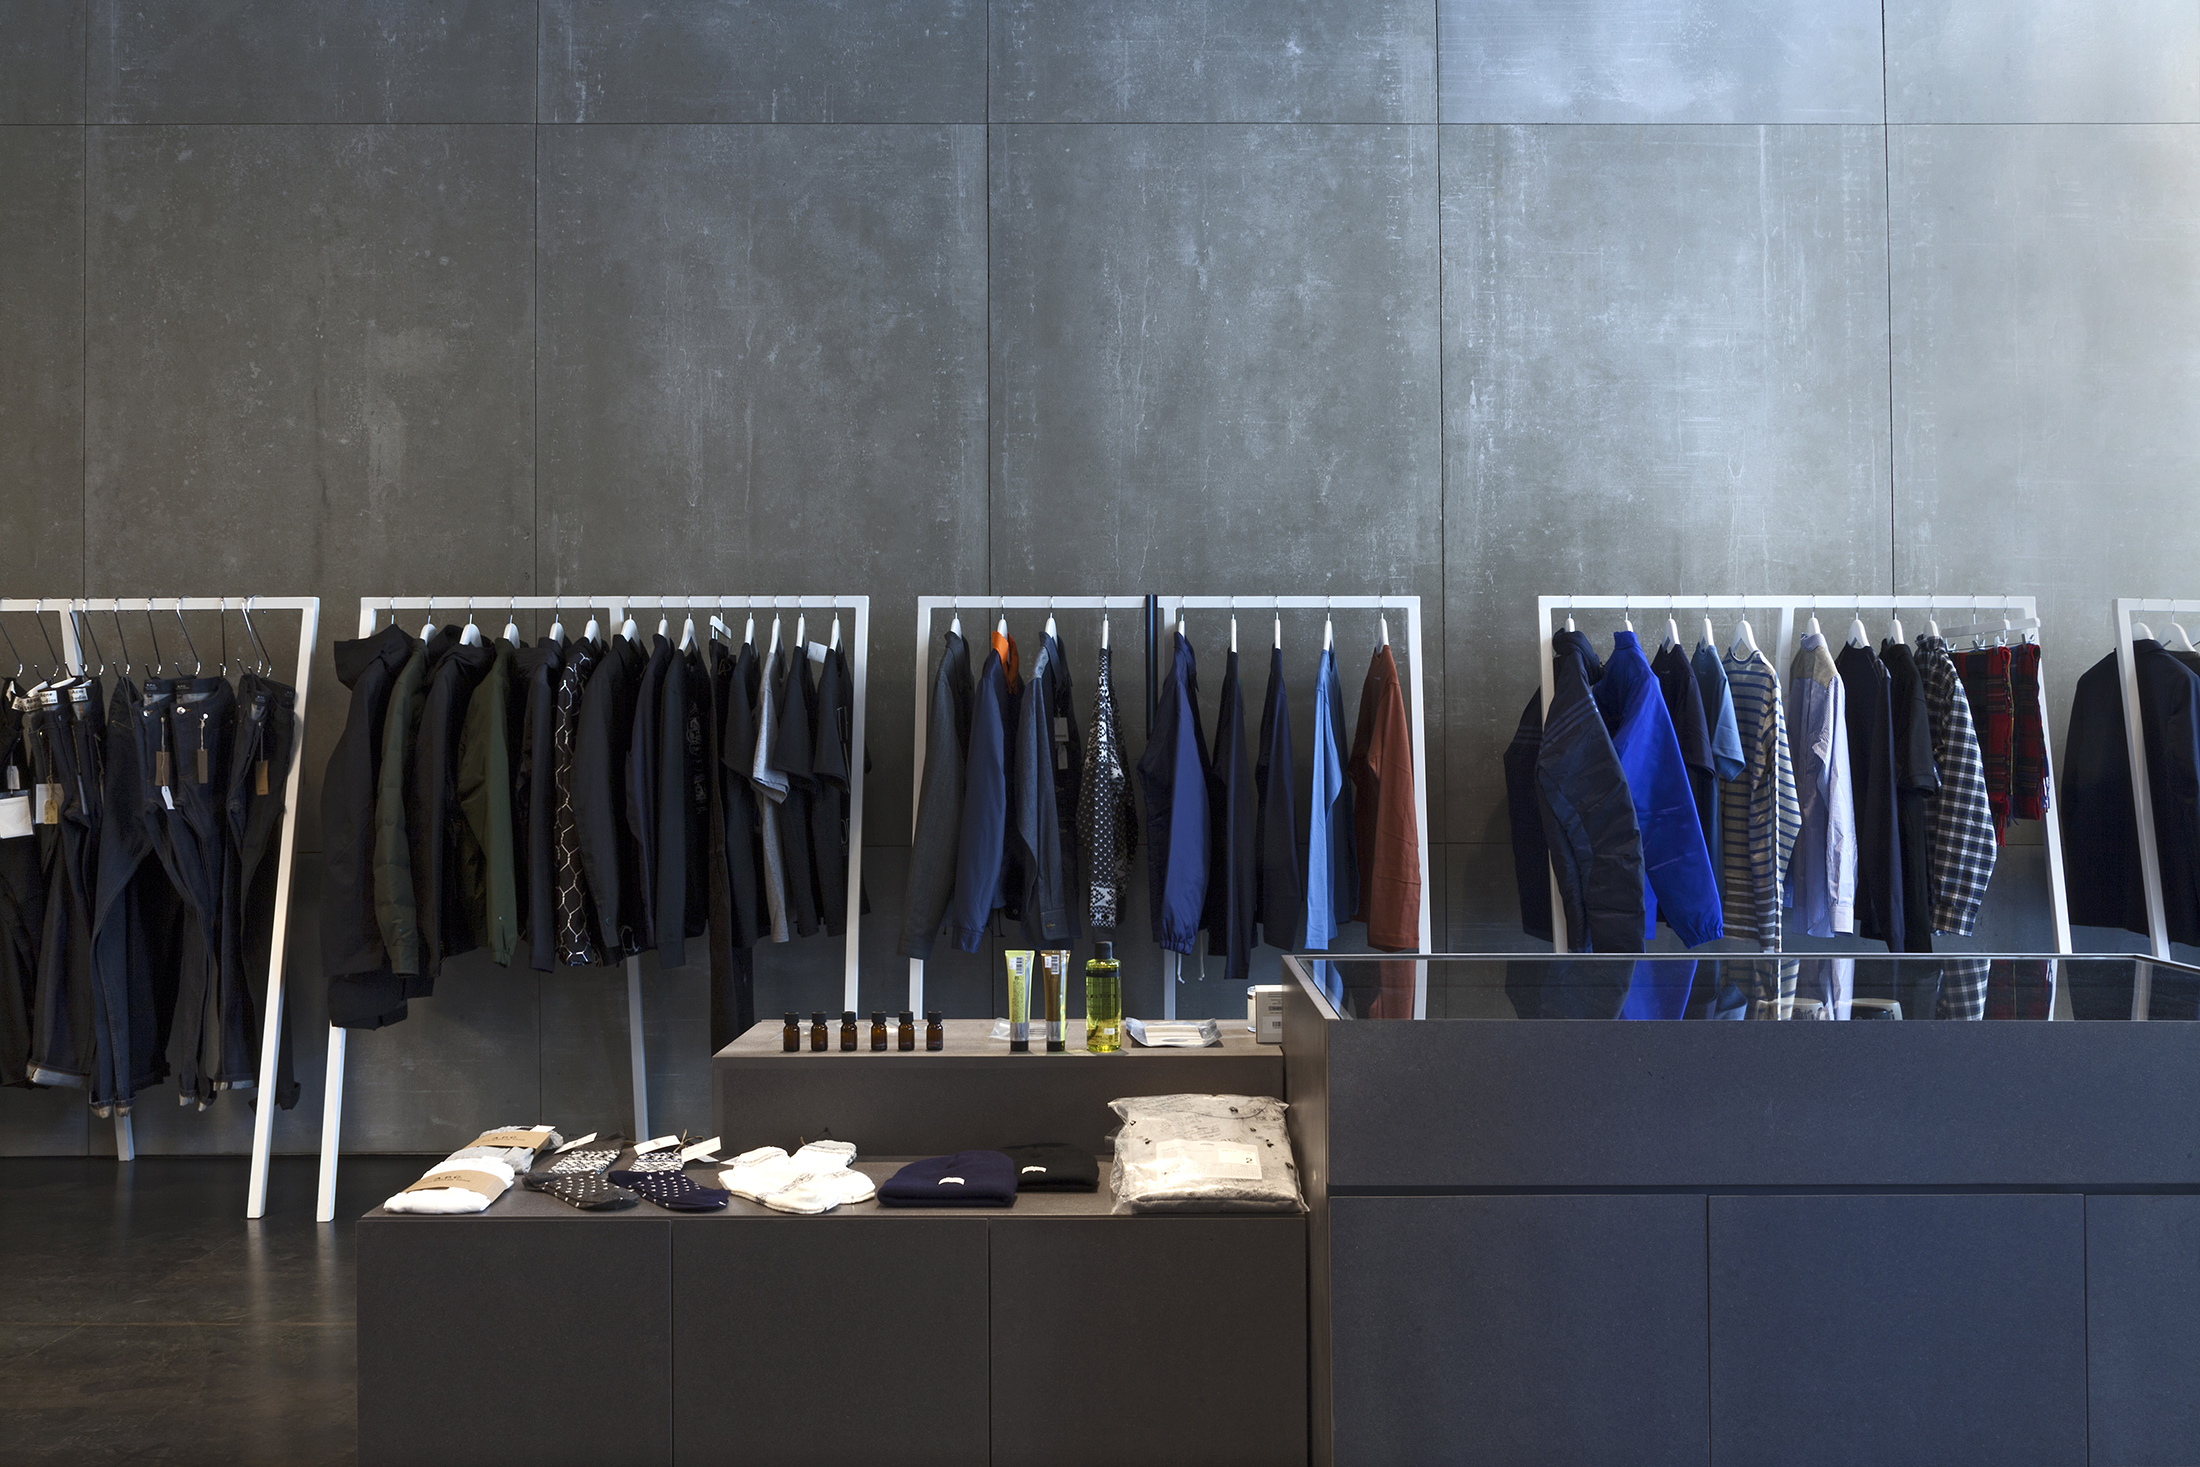 Lyon's SUMMER Store Reopens With a Revamped Interior & New Brand Selection